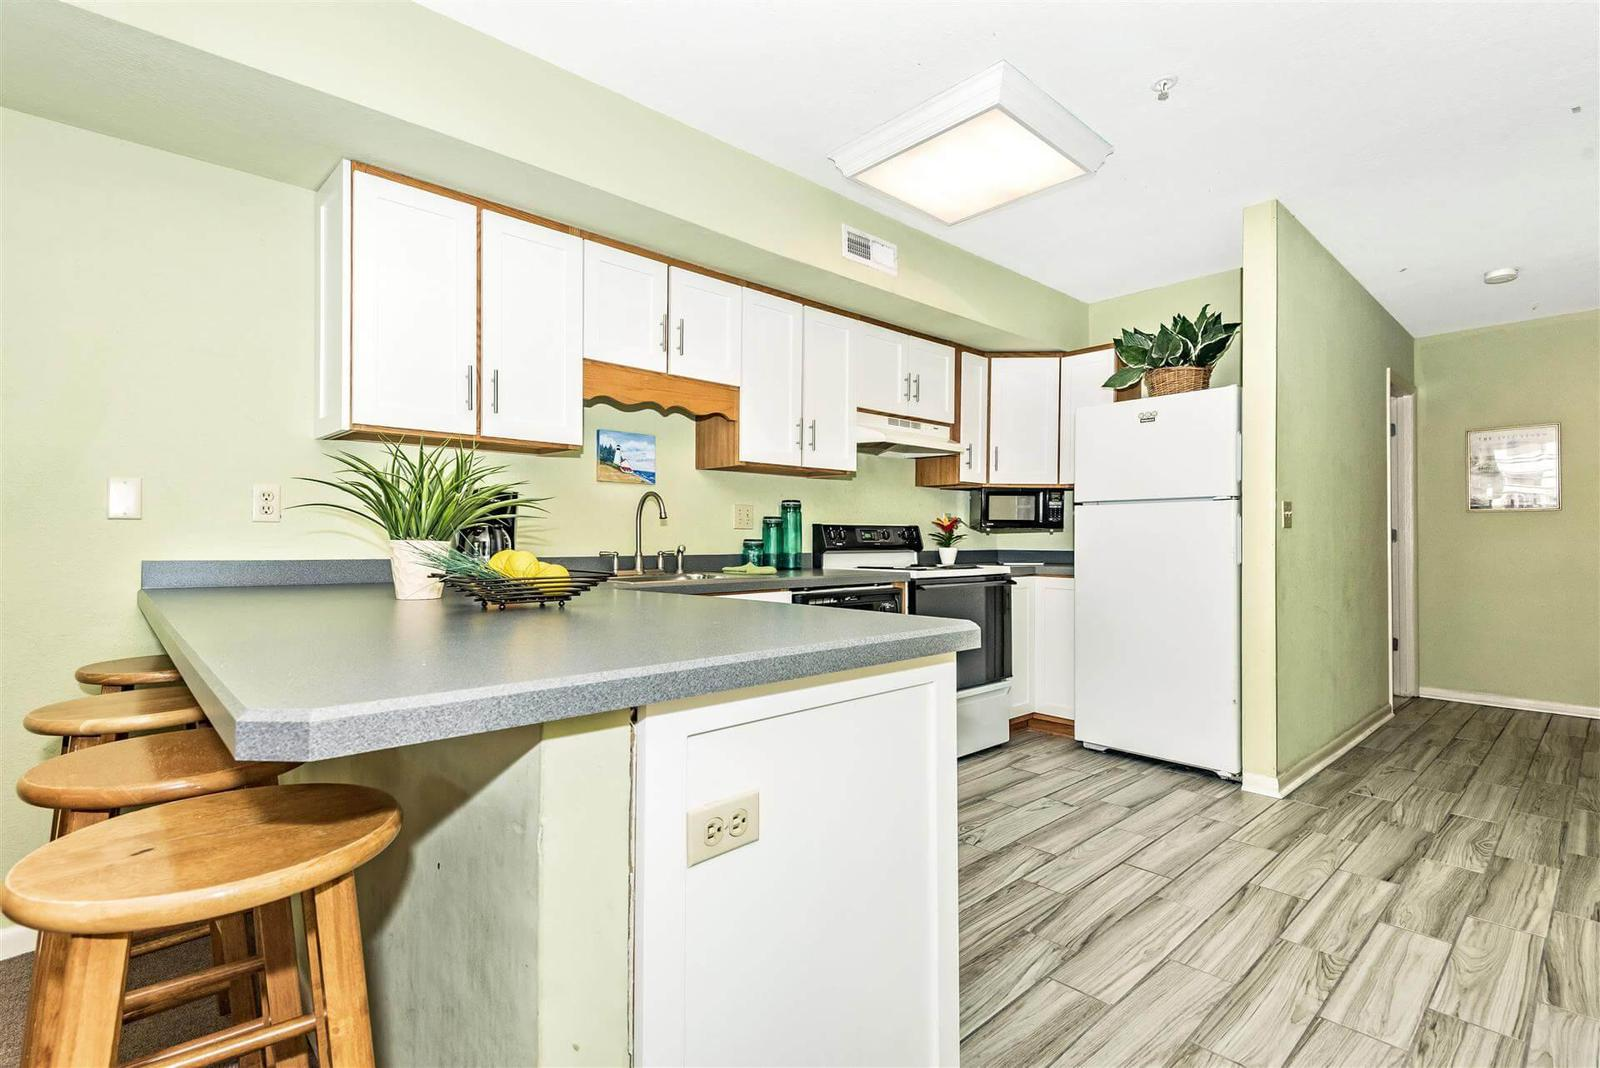 Spacious and clean kitchen with bar seating